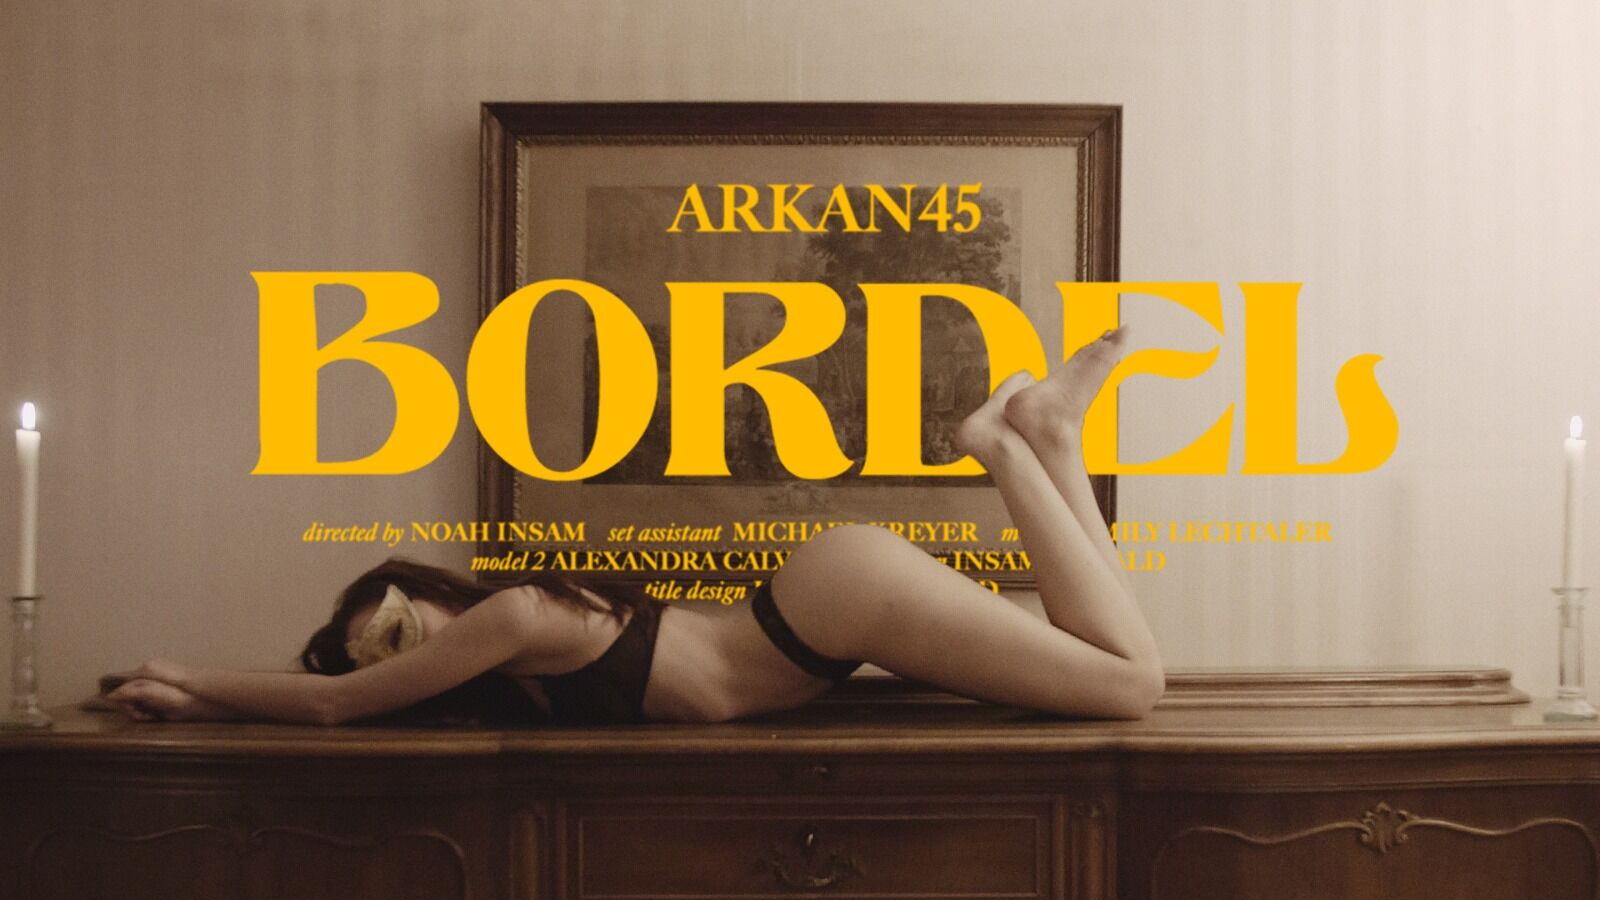 Upcoming: Arkan45 - Bordel